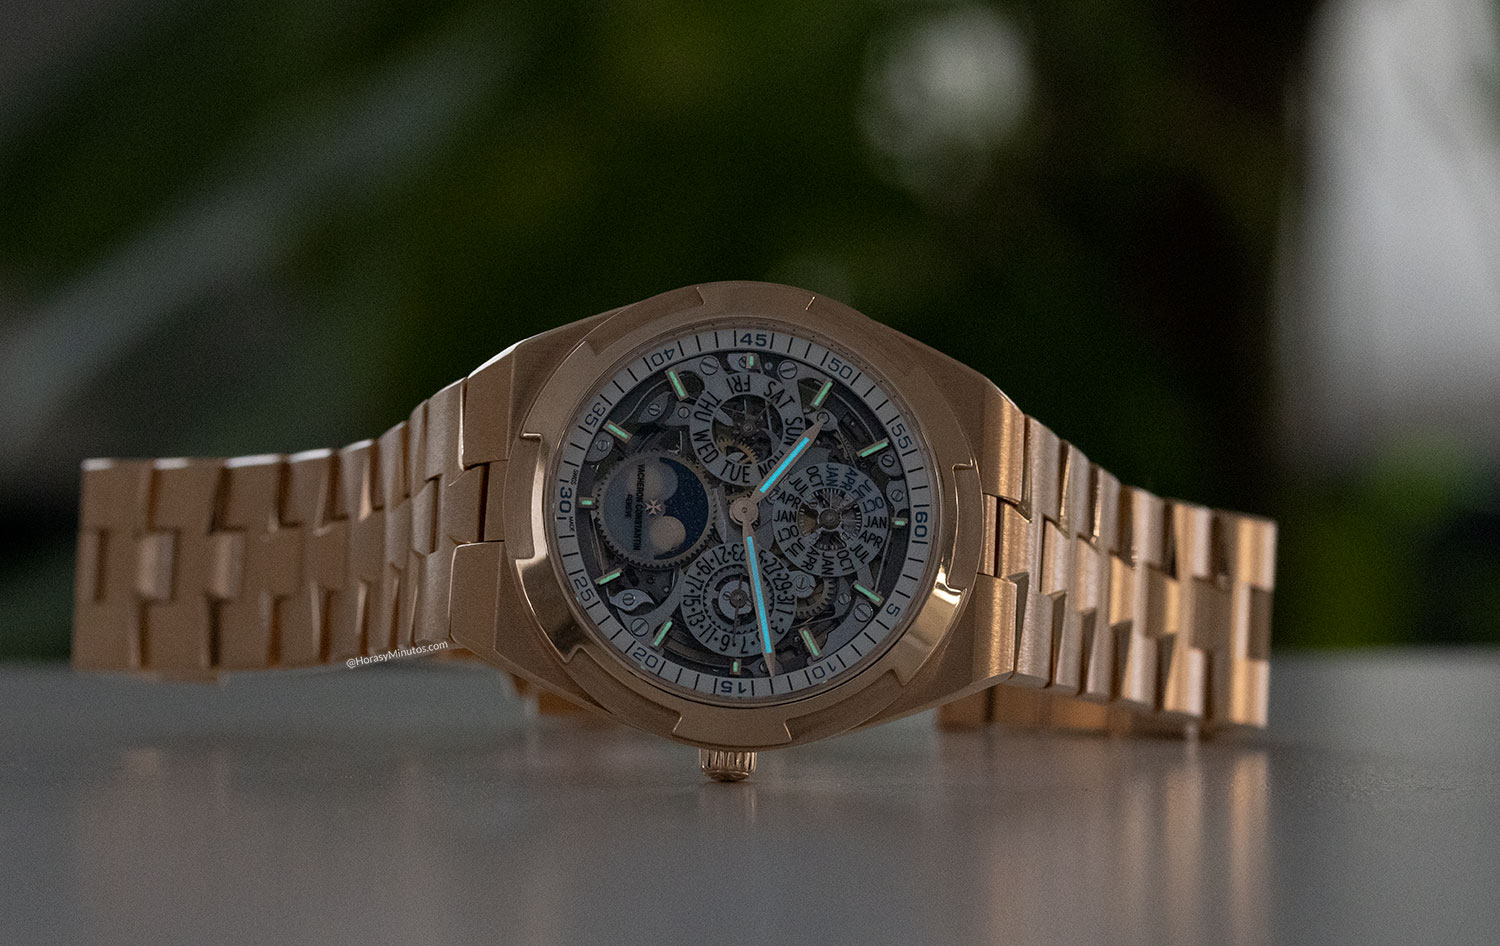 Tratamiento con Super-LumiNova del Vacheron Constantin Overseas Perpetual Calendar Ultra Thin Skeleton